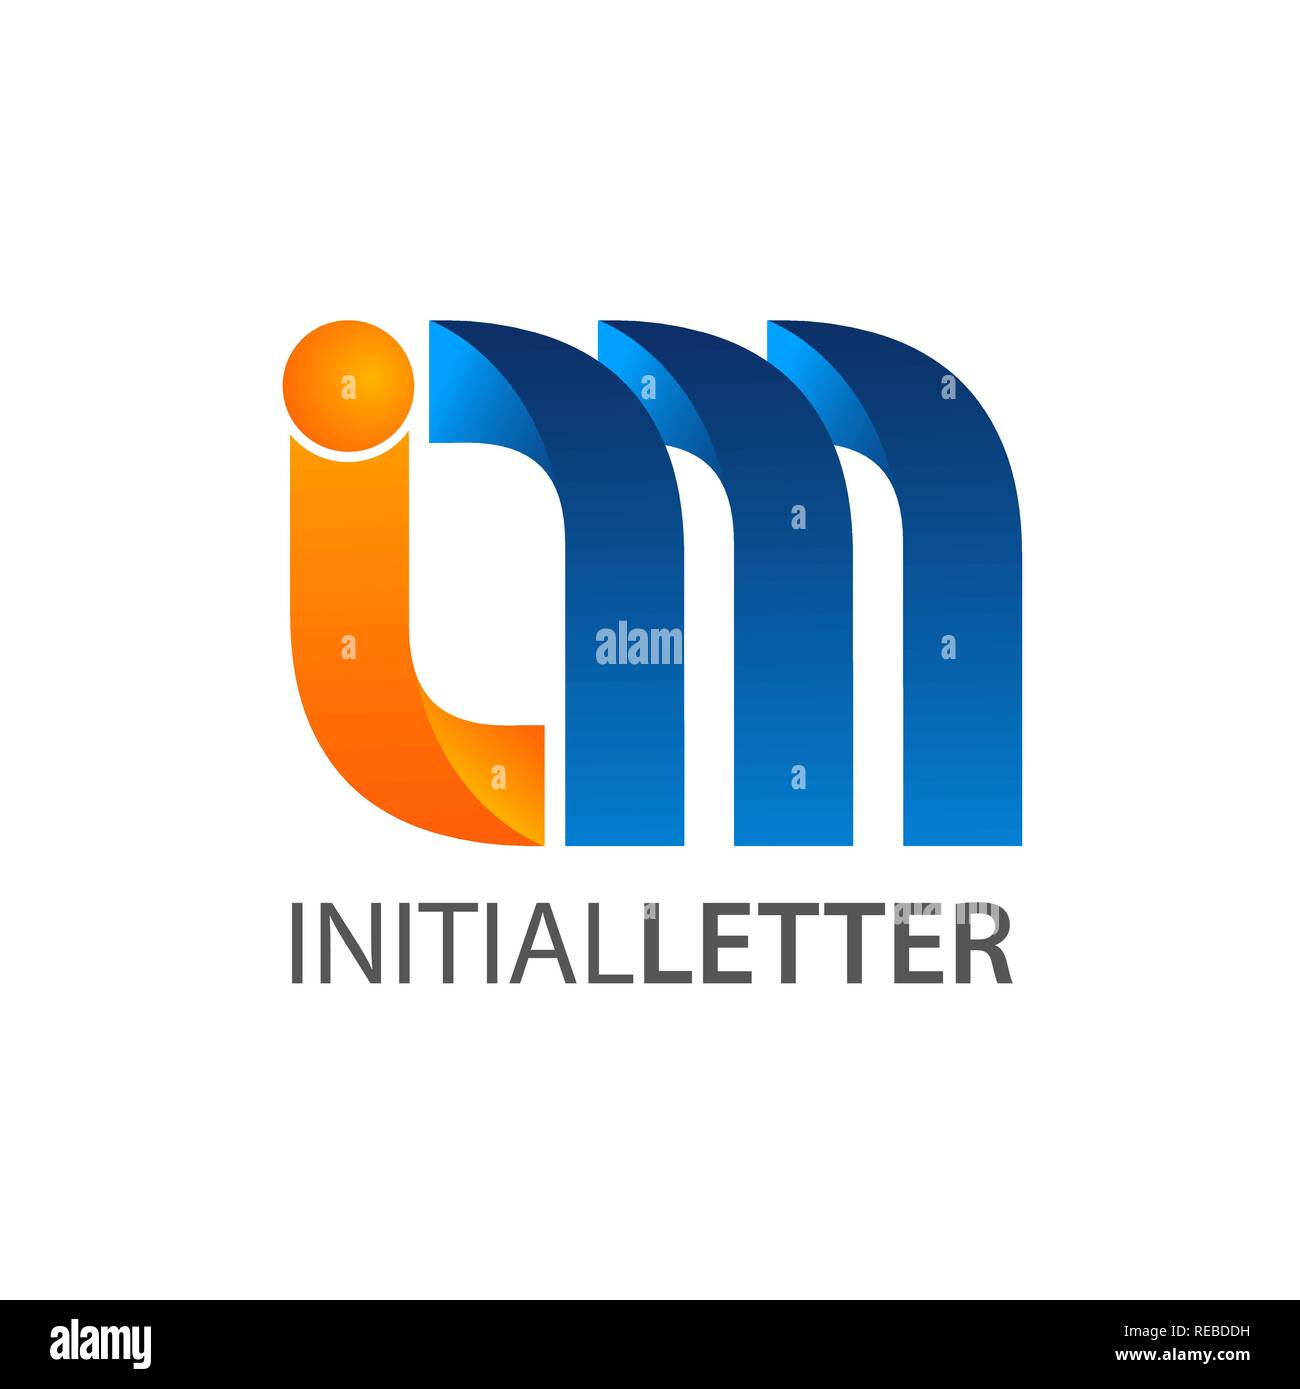 Initial letter im curved logo concept design. Symbol graphic template element vector - Stock Image